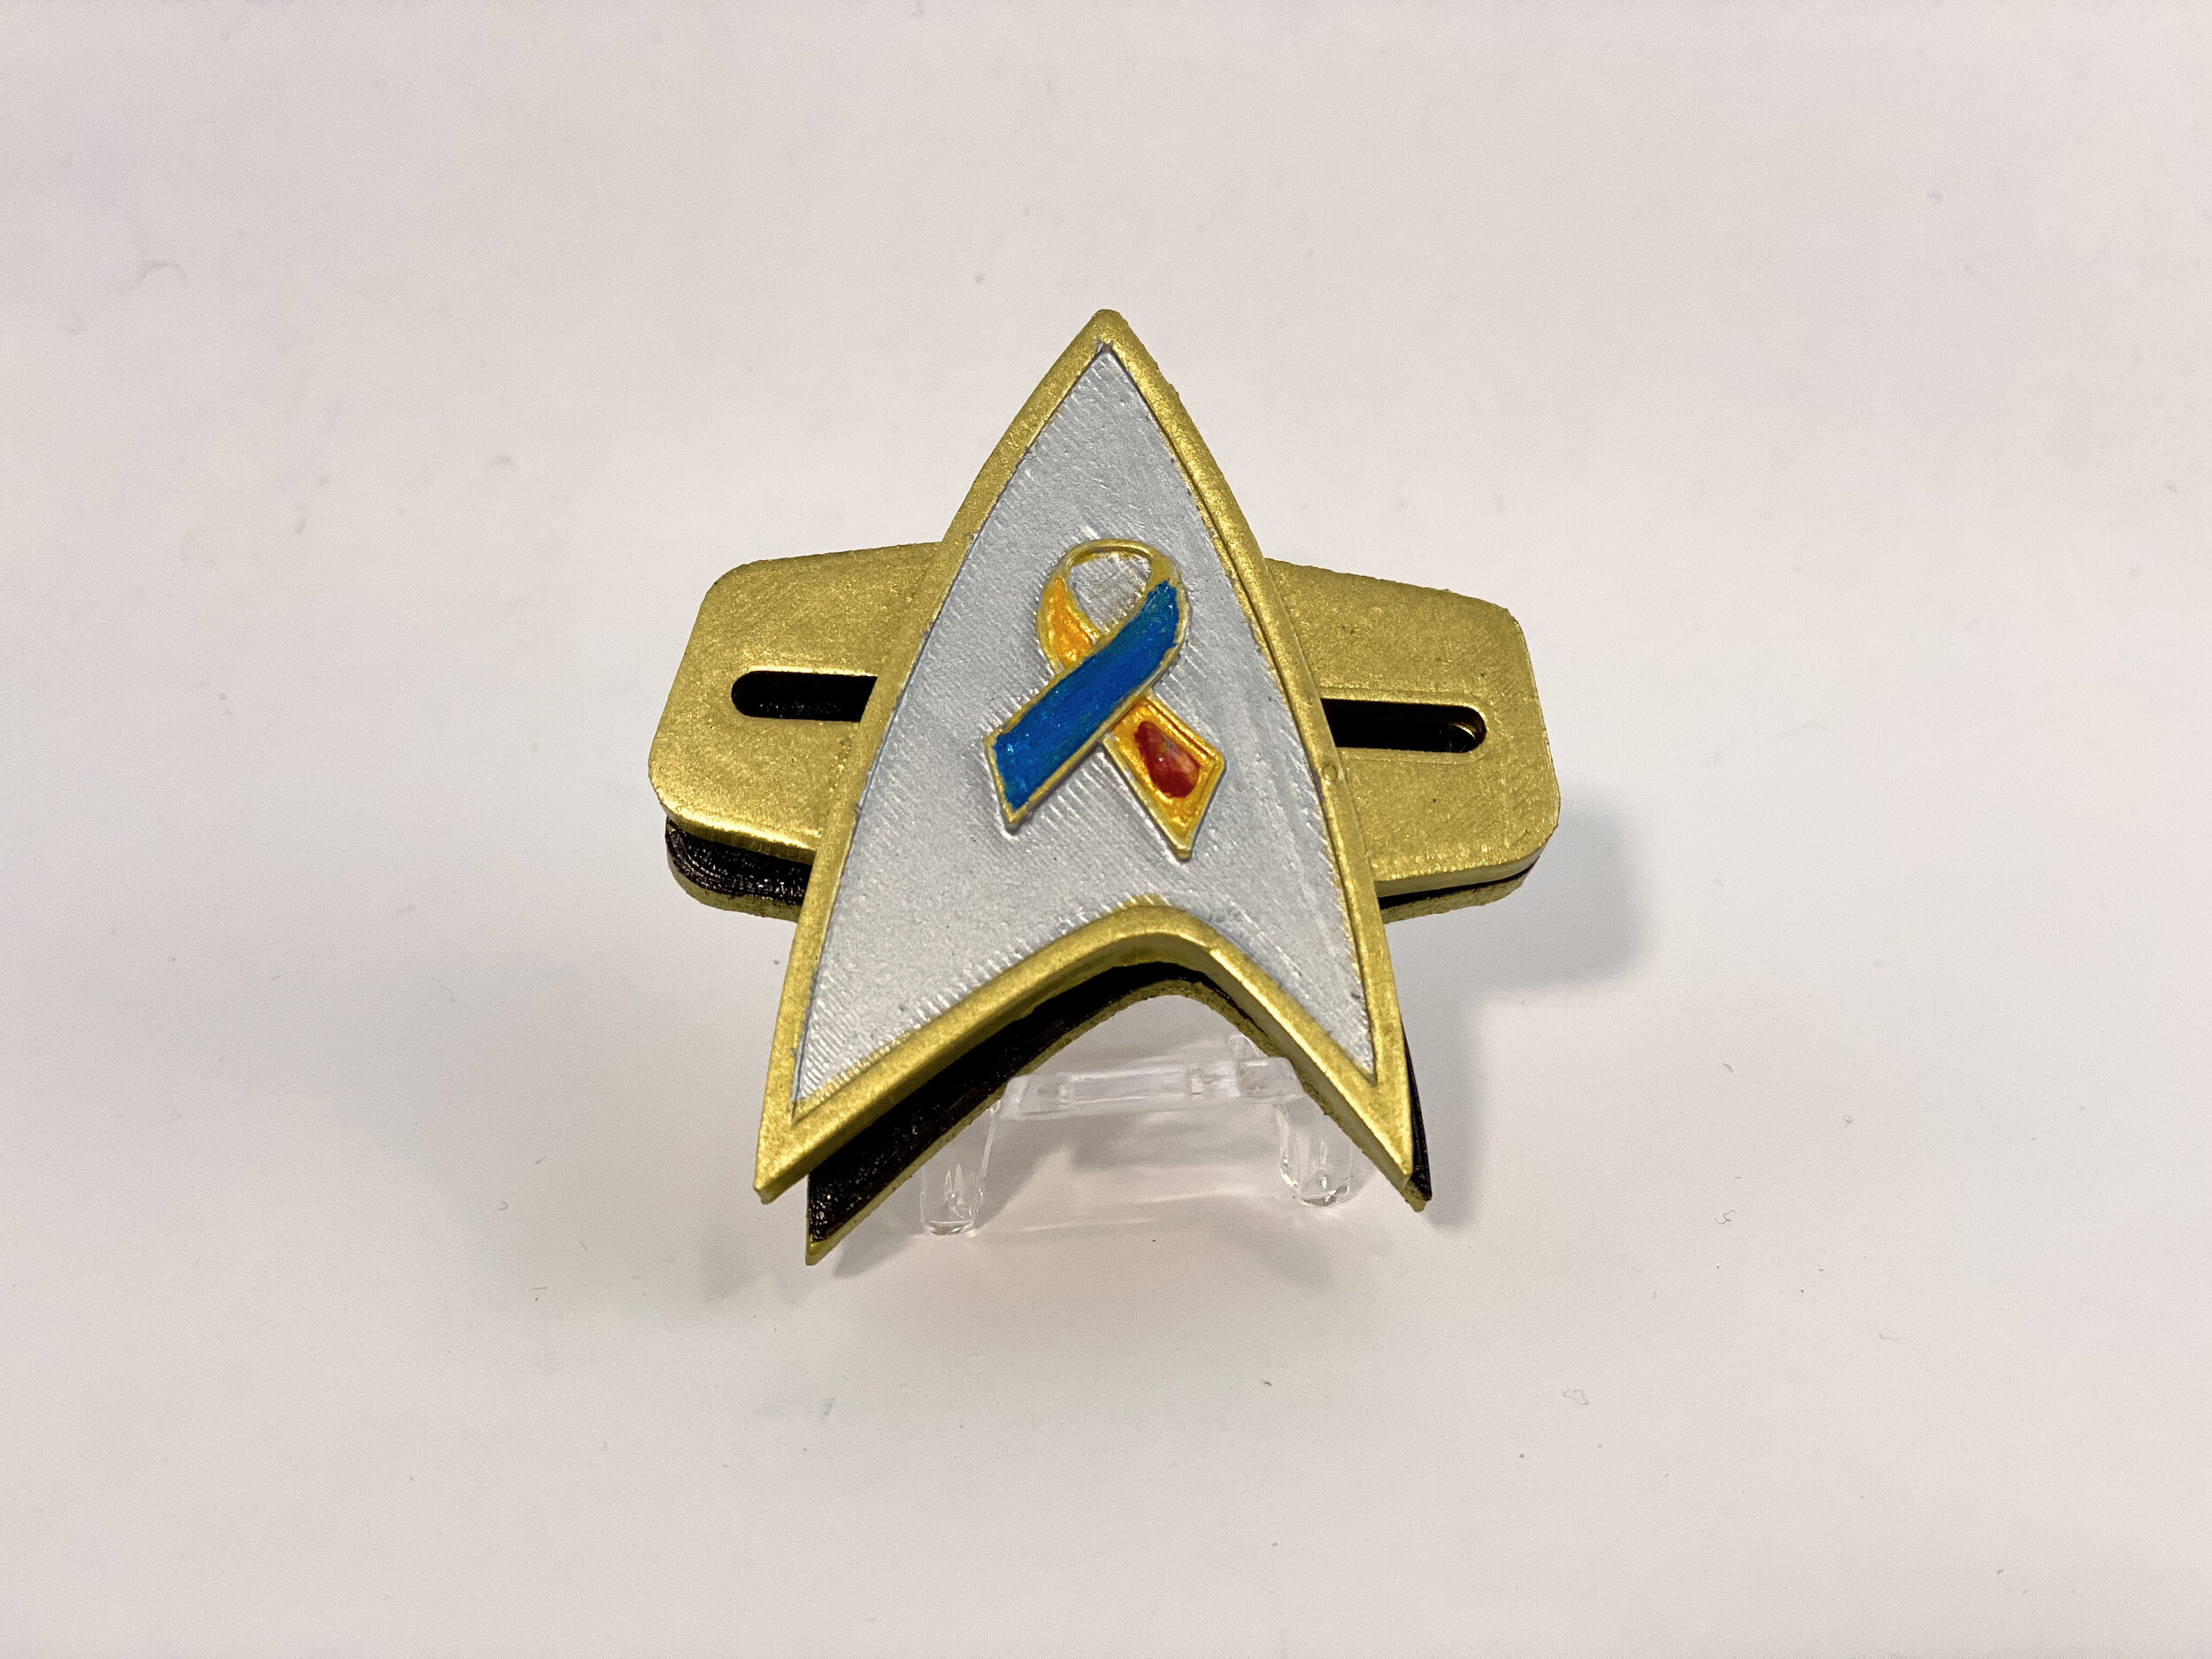 The special Starfleet #Insulin4All Division combadge